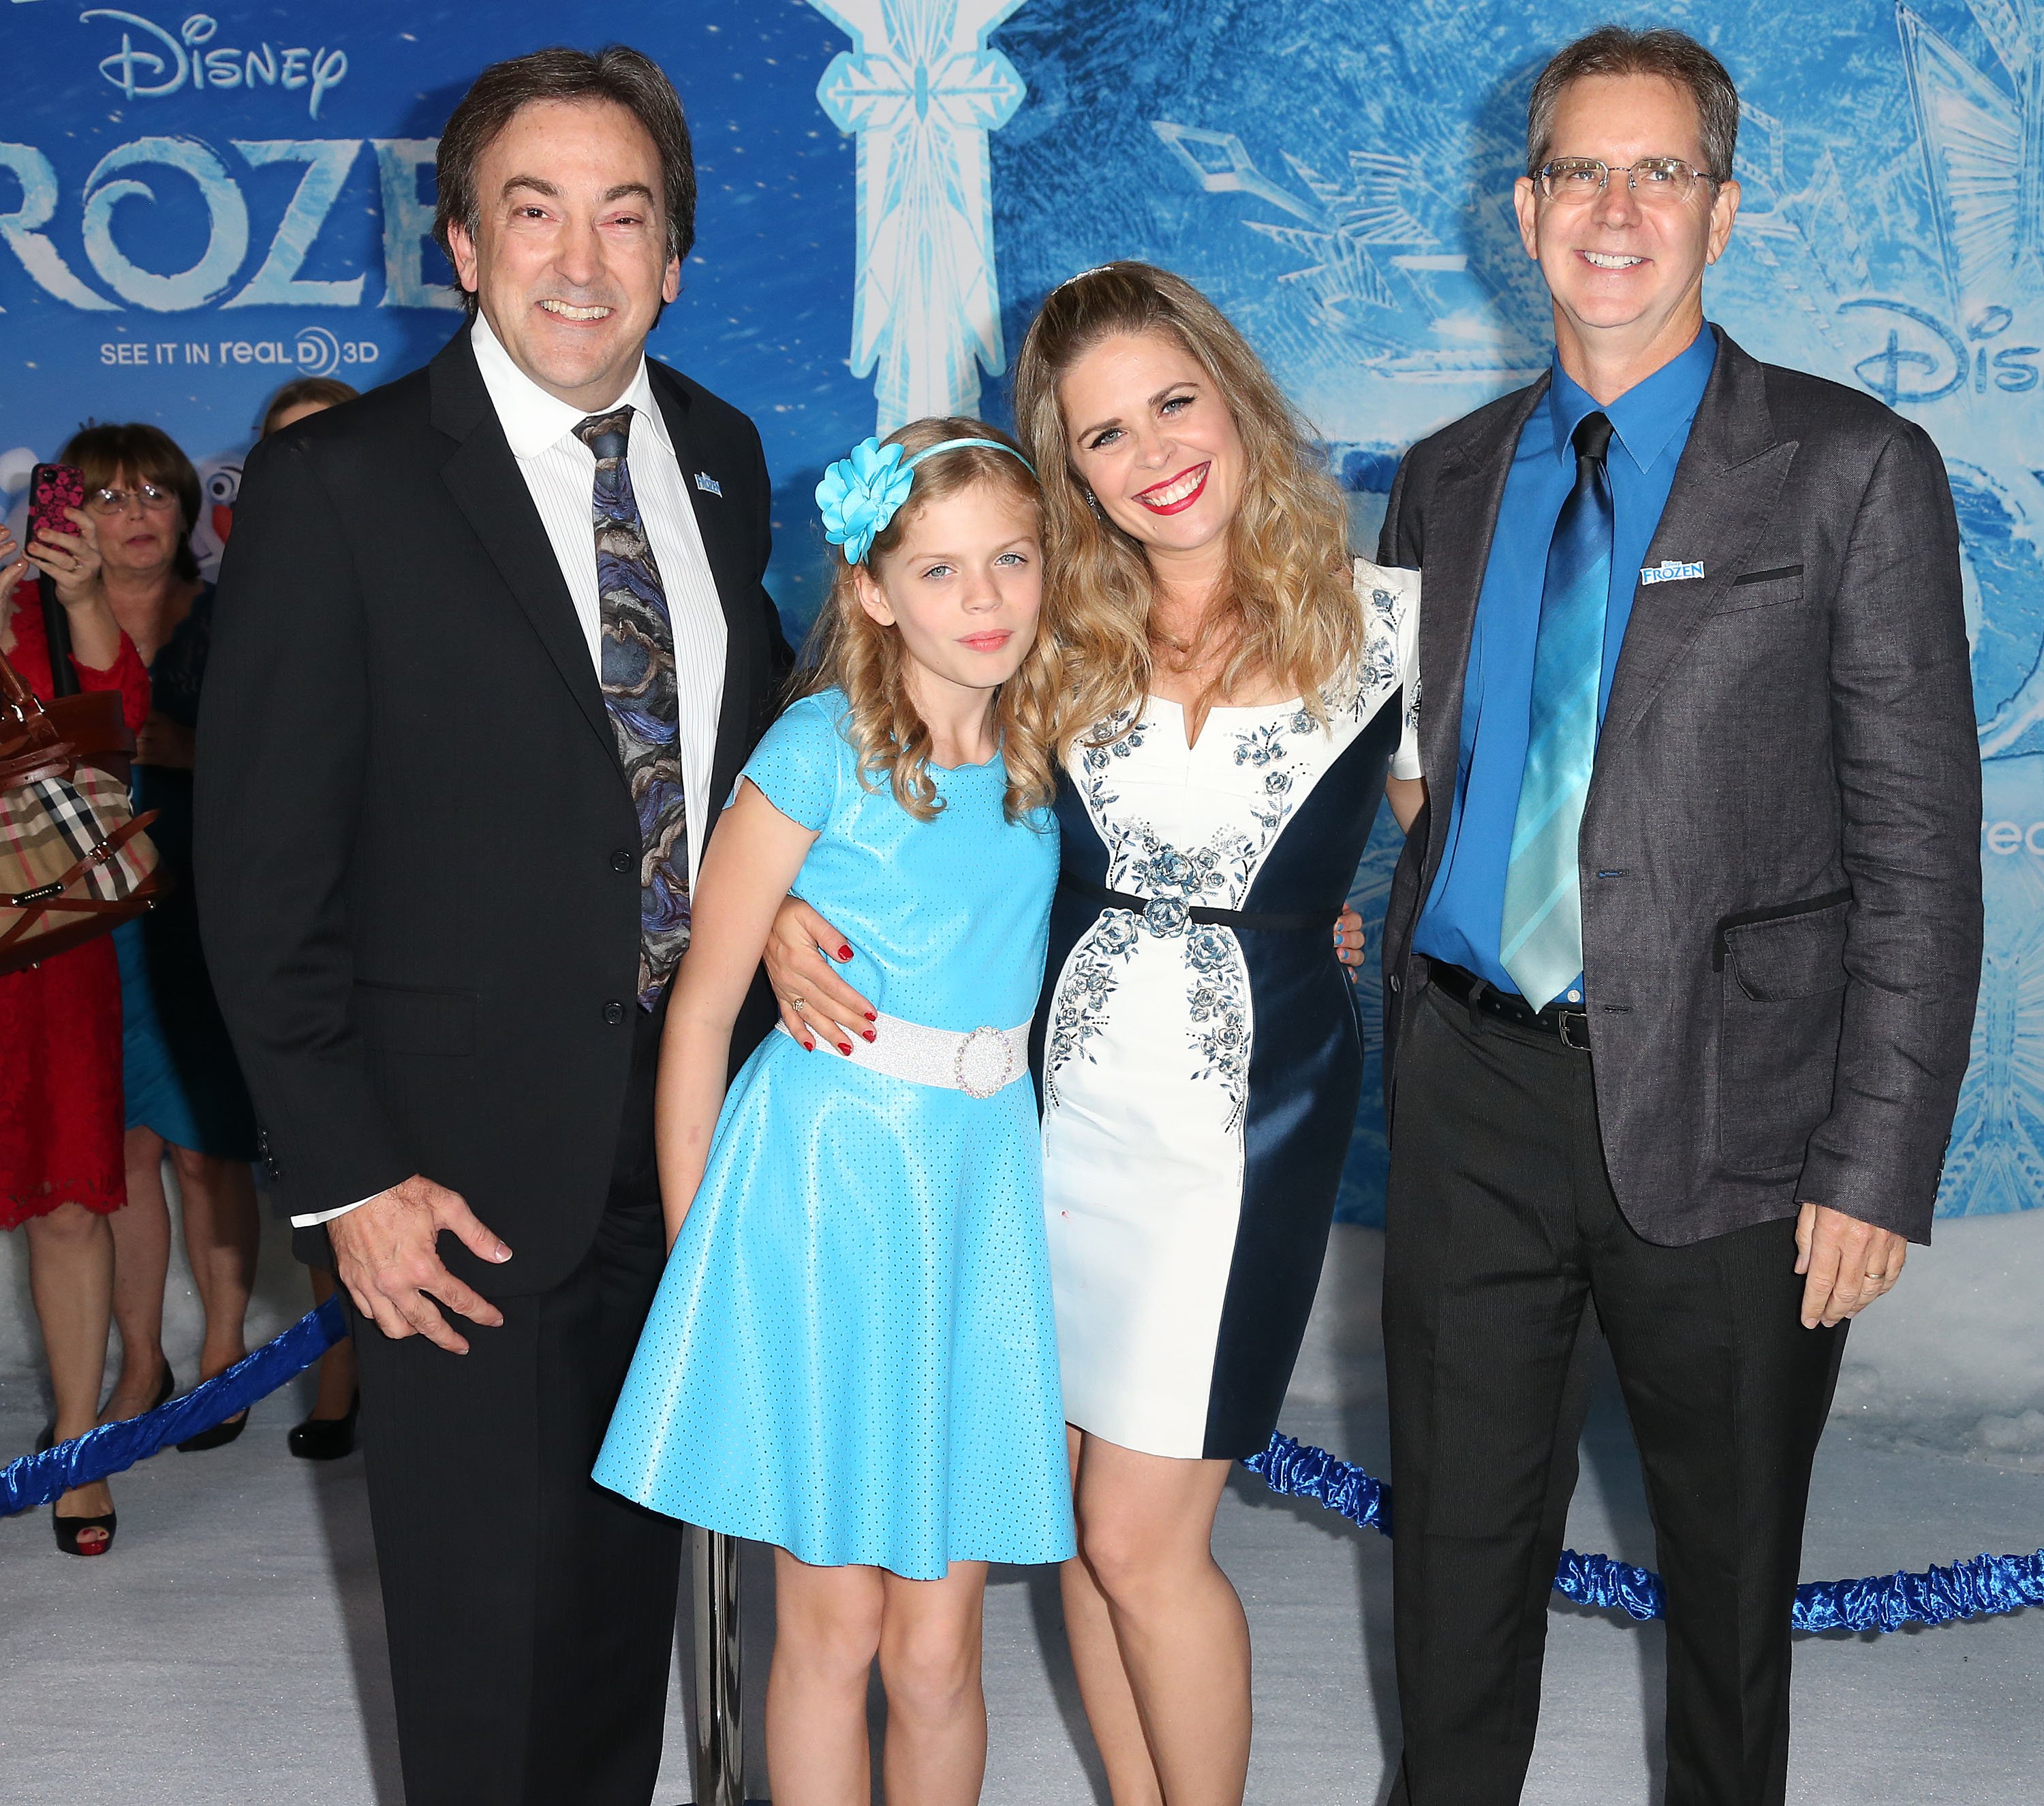 frozen director jennifer lee is the disney woman i want my daughter